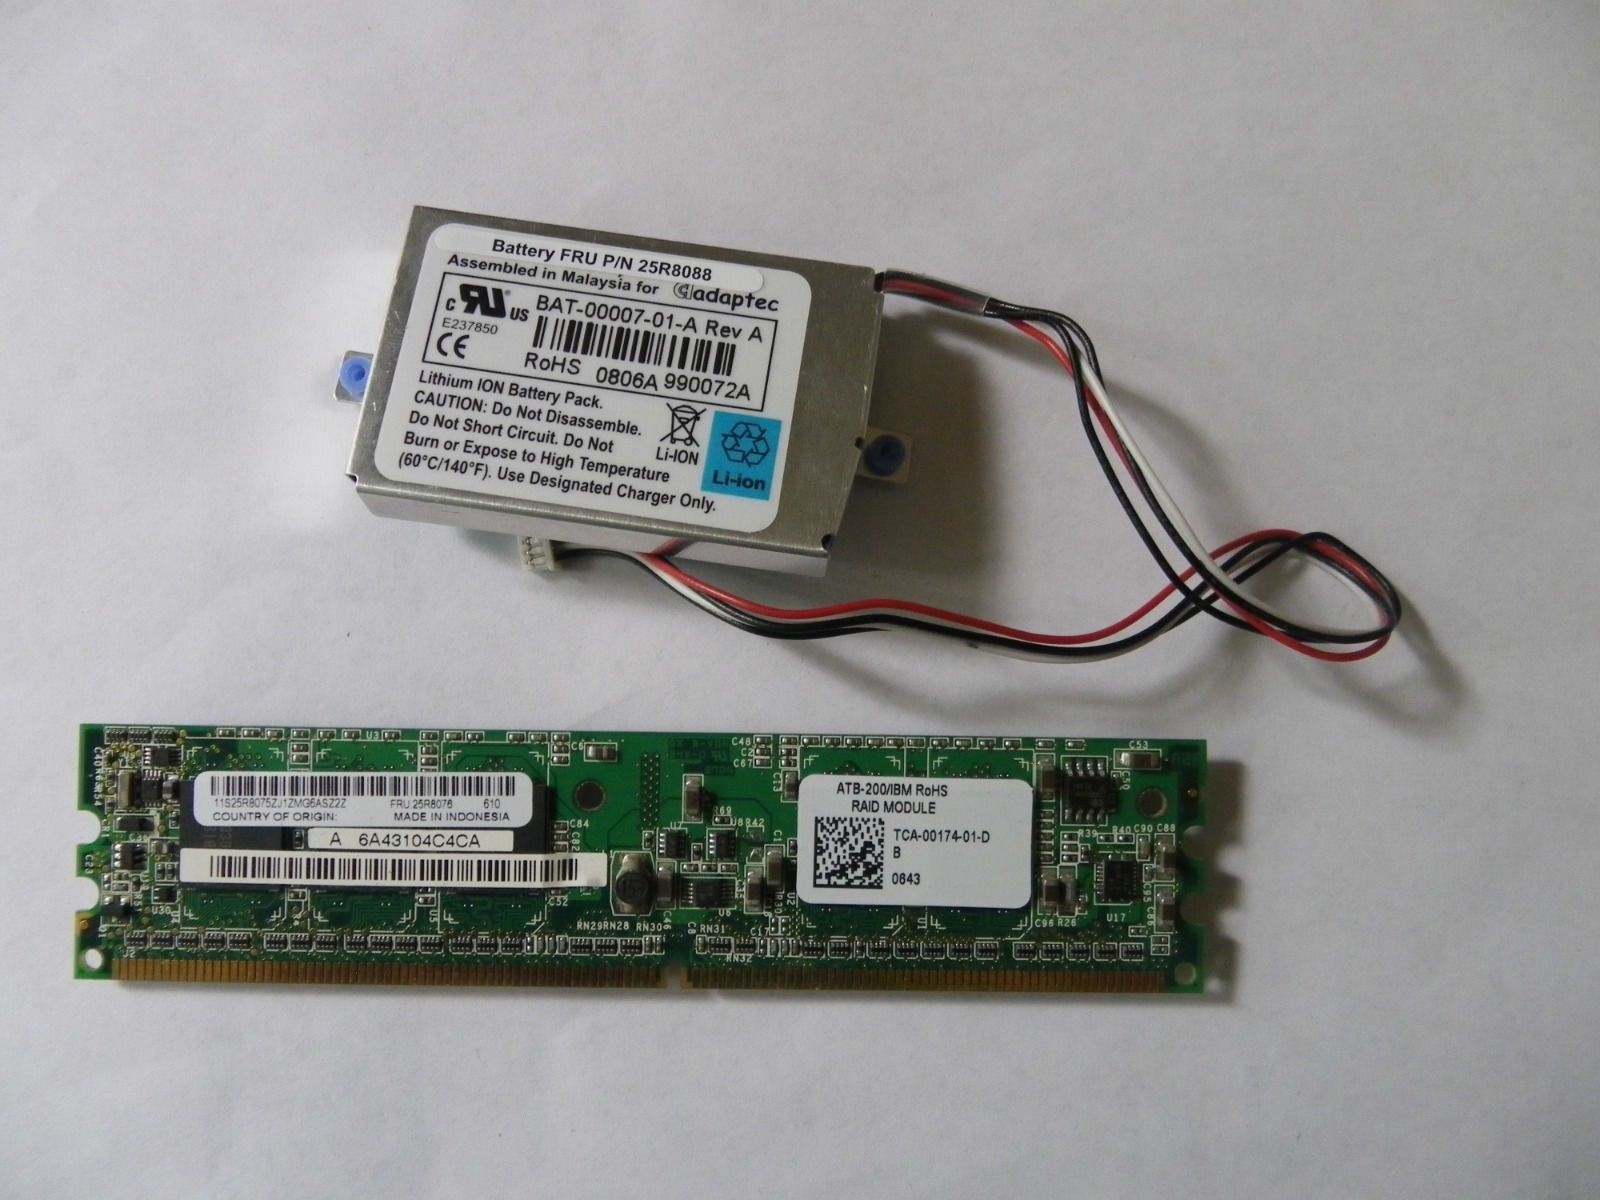 IBM 25R8076 ServerRAID 8k SAS Controller With Battery 25r8088